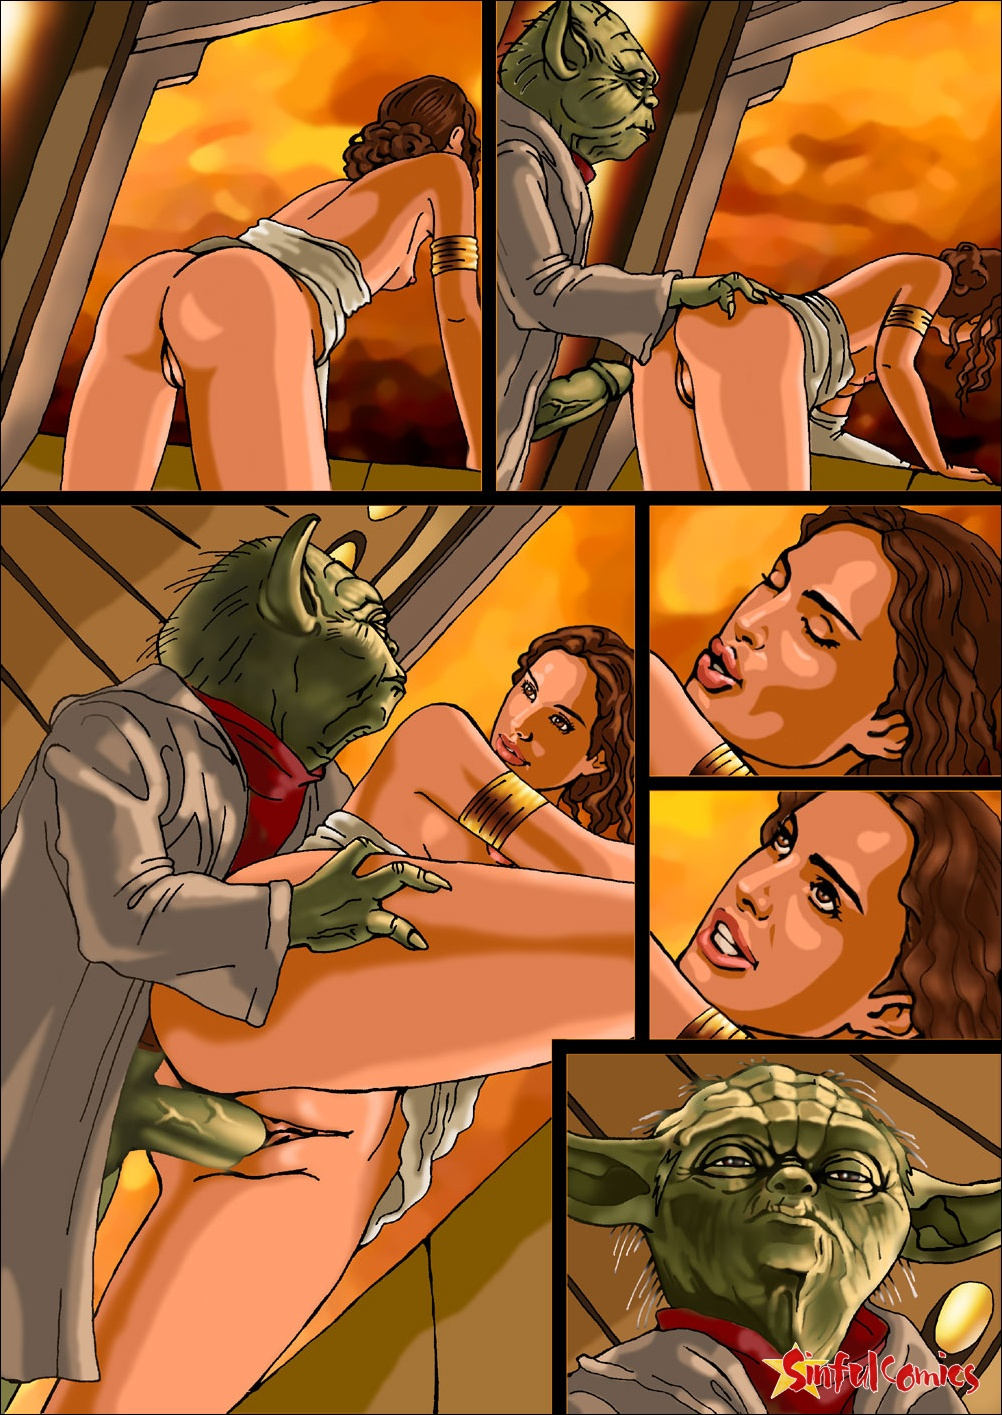 Star wars sex hentai galleries